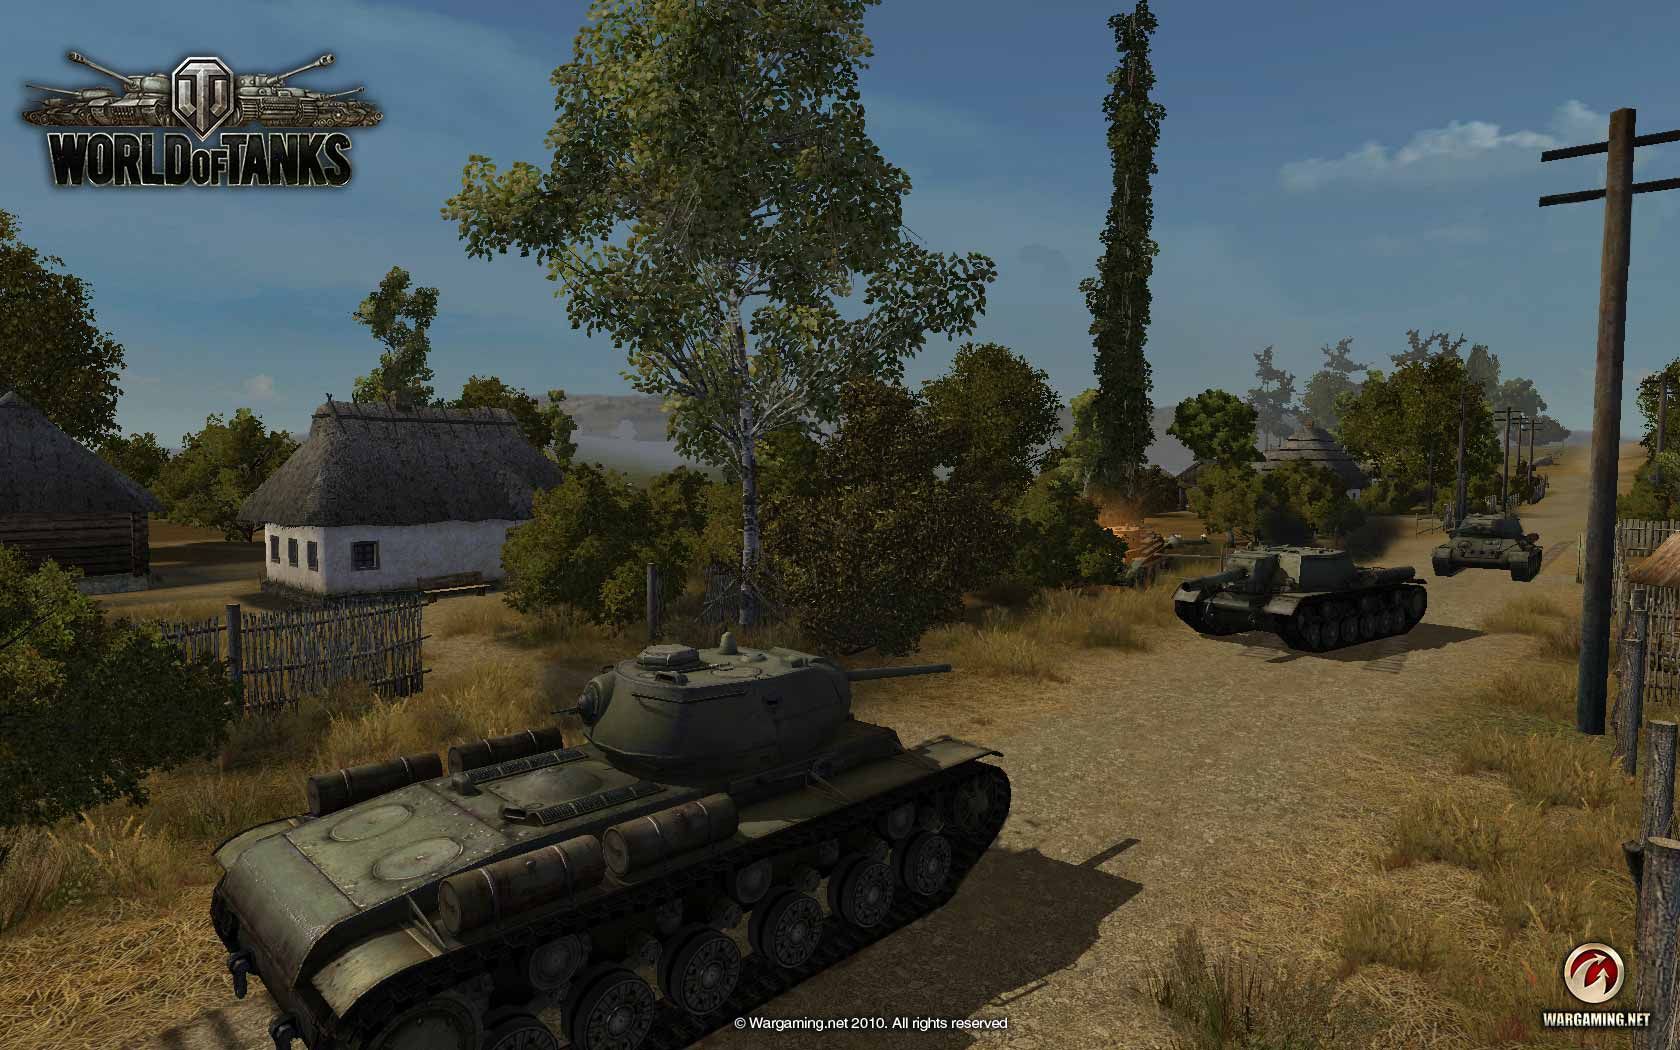 World of Tanks: Xbox 360 Edition